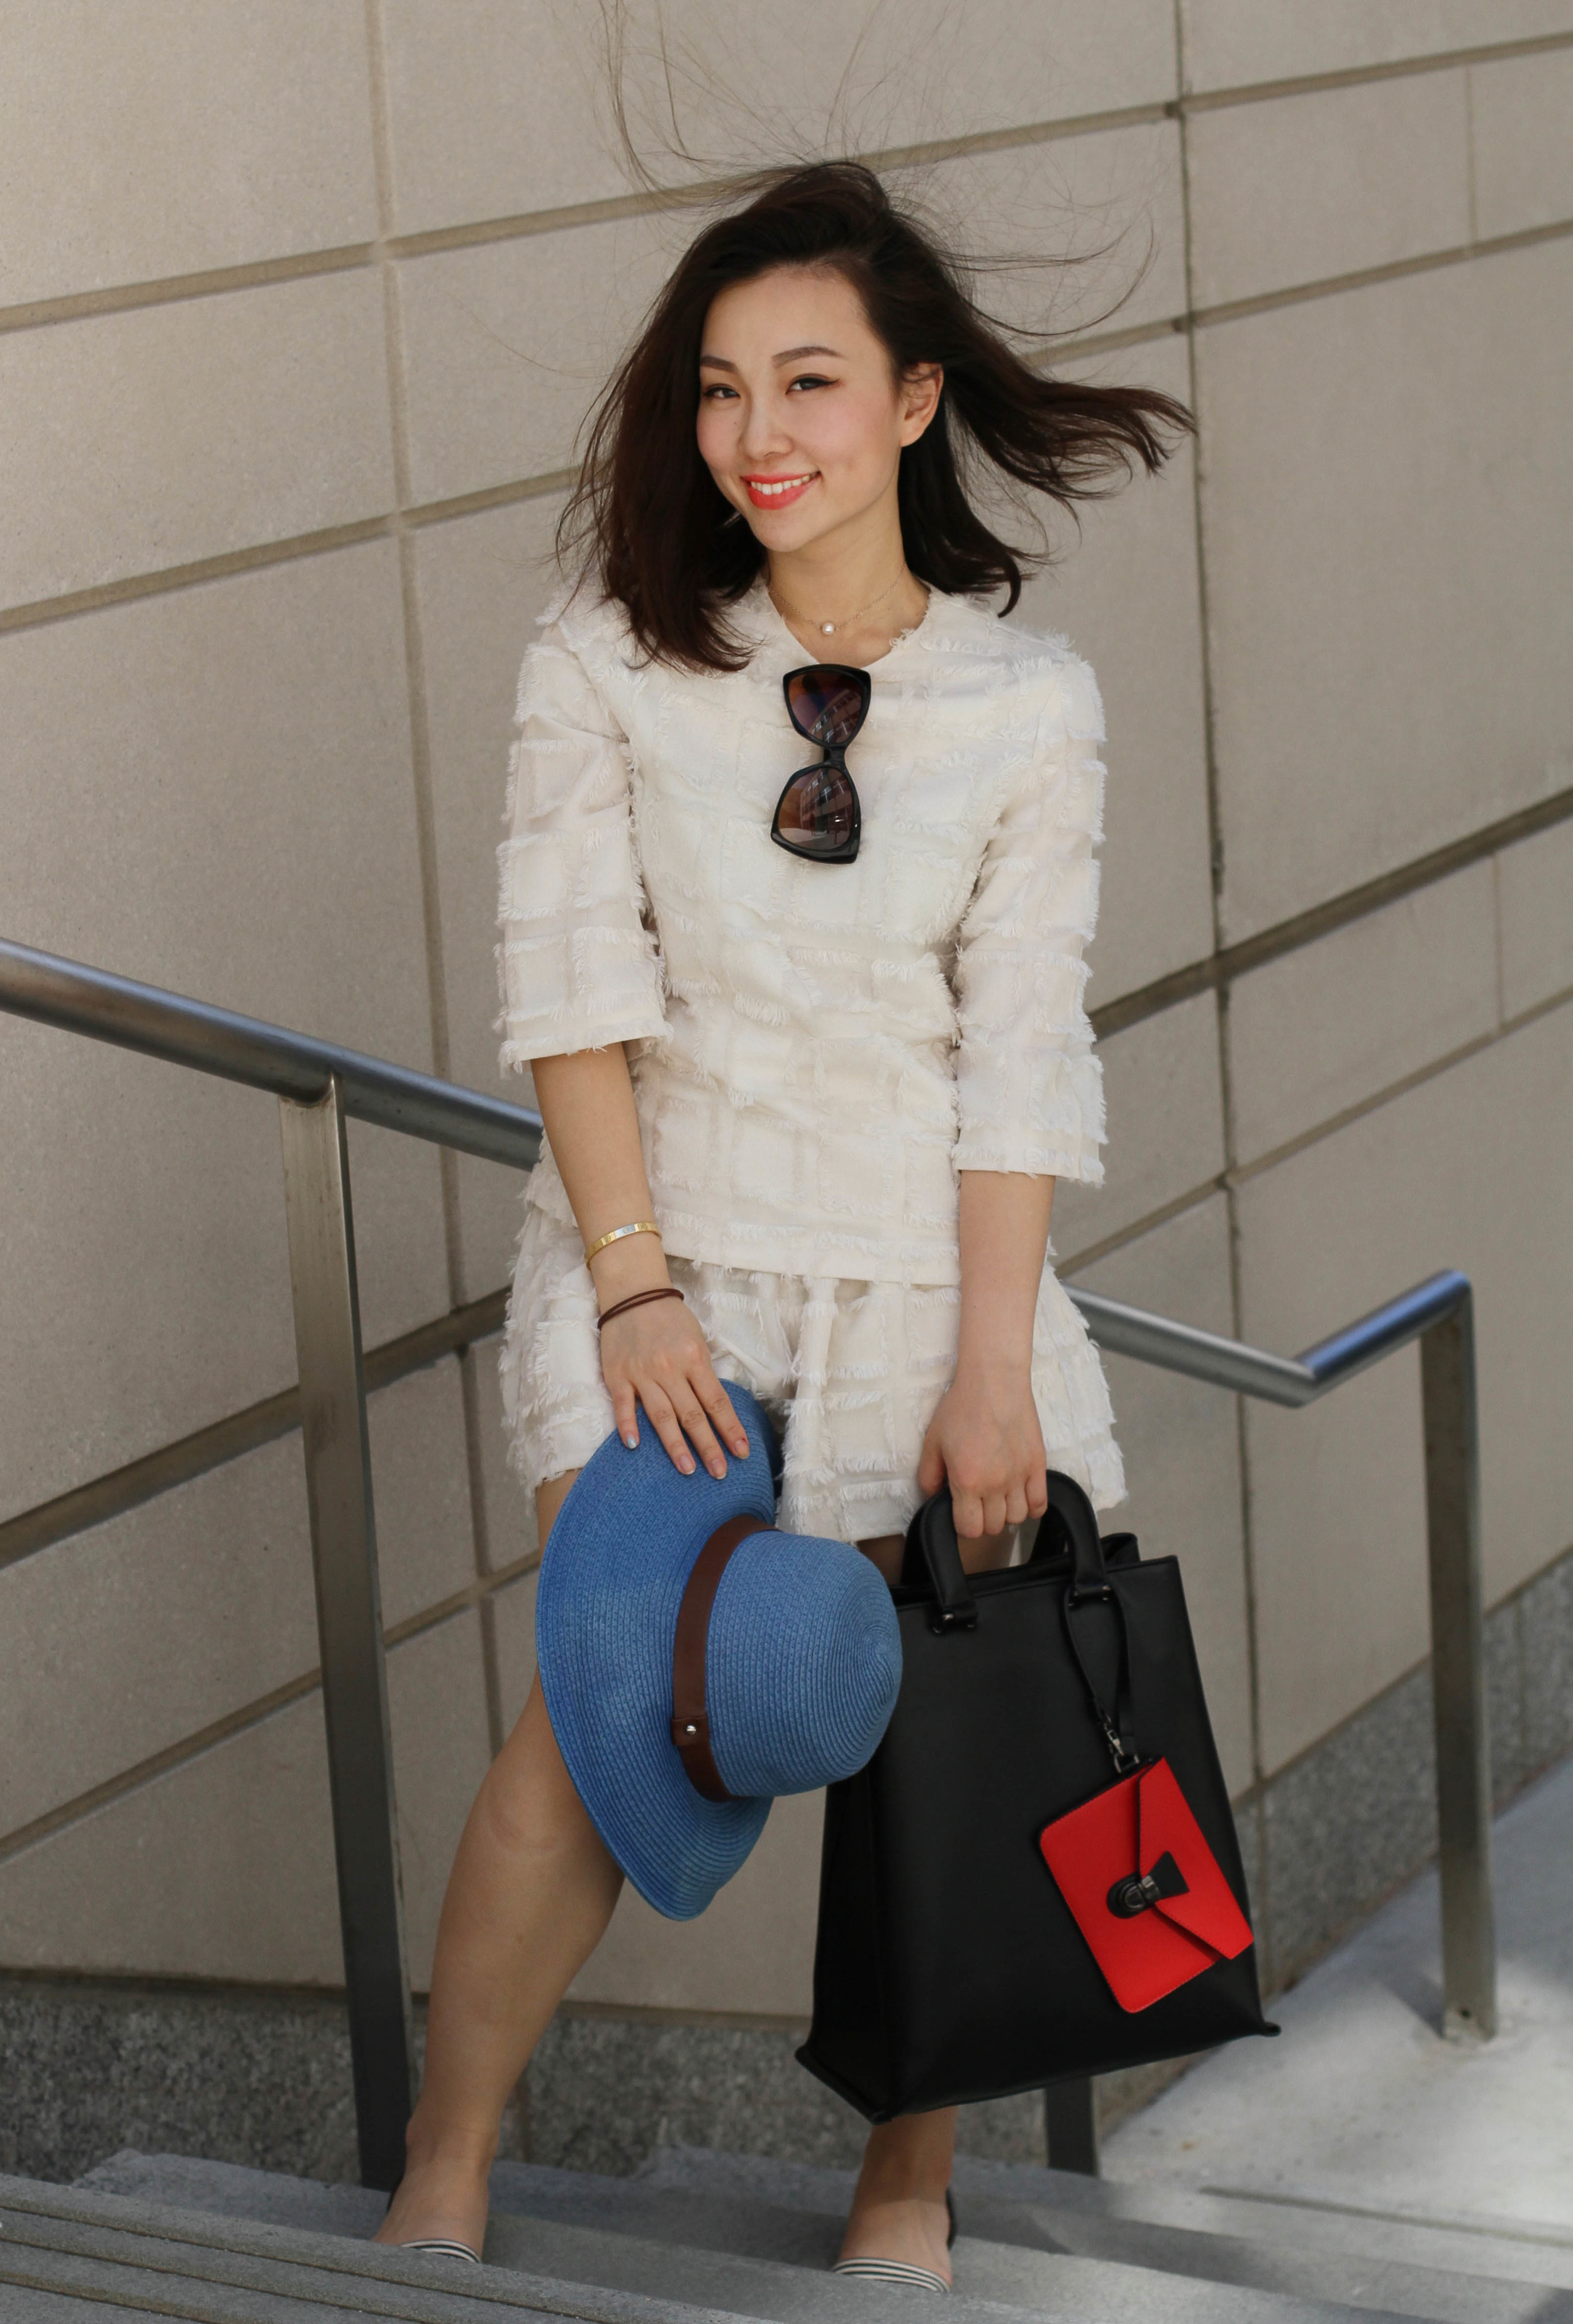 chic practical lace outfit.jpg